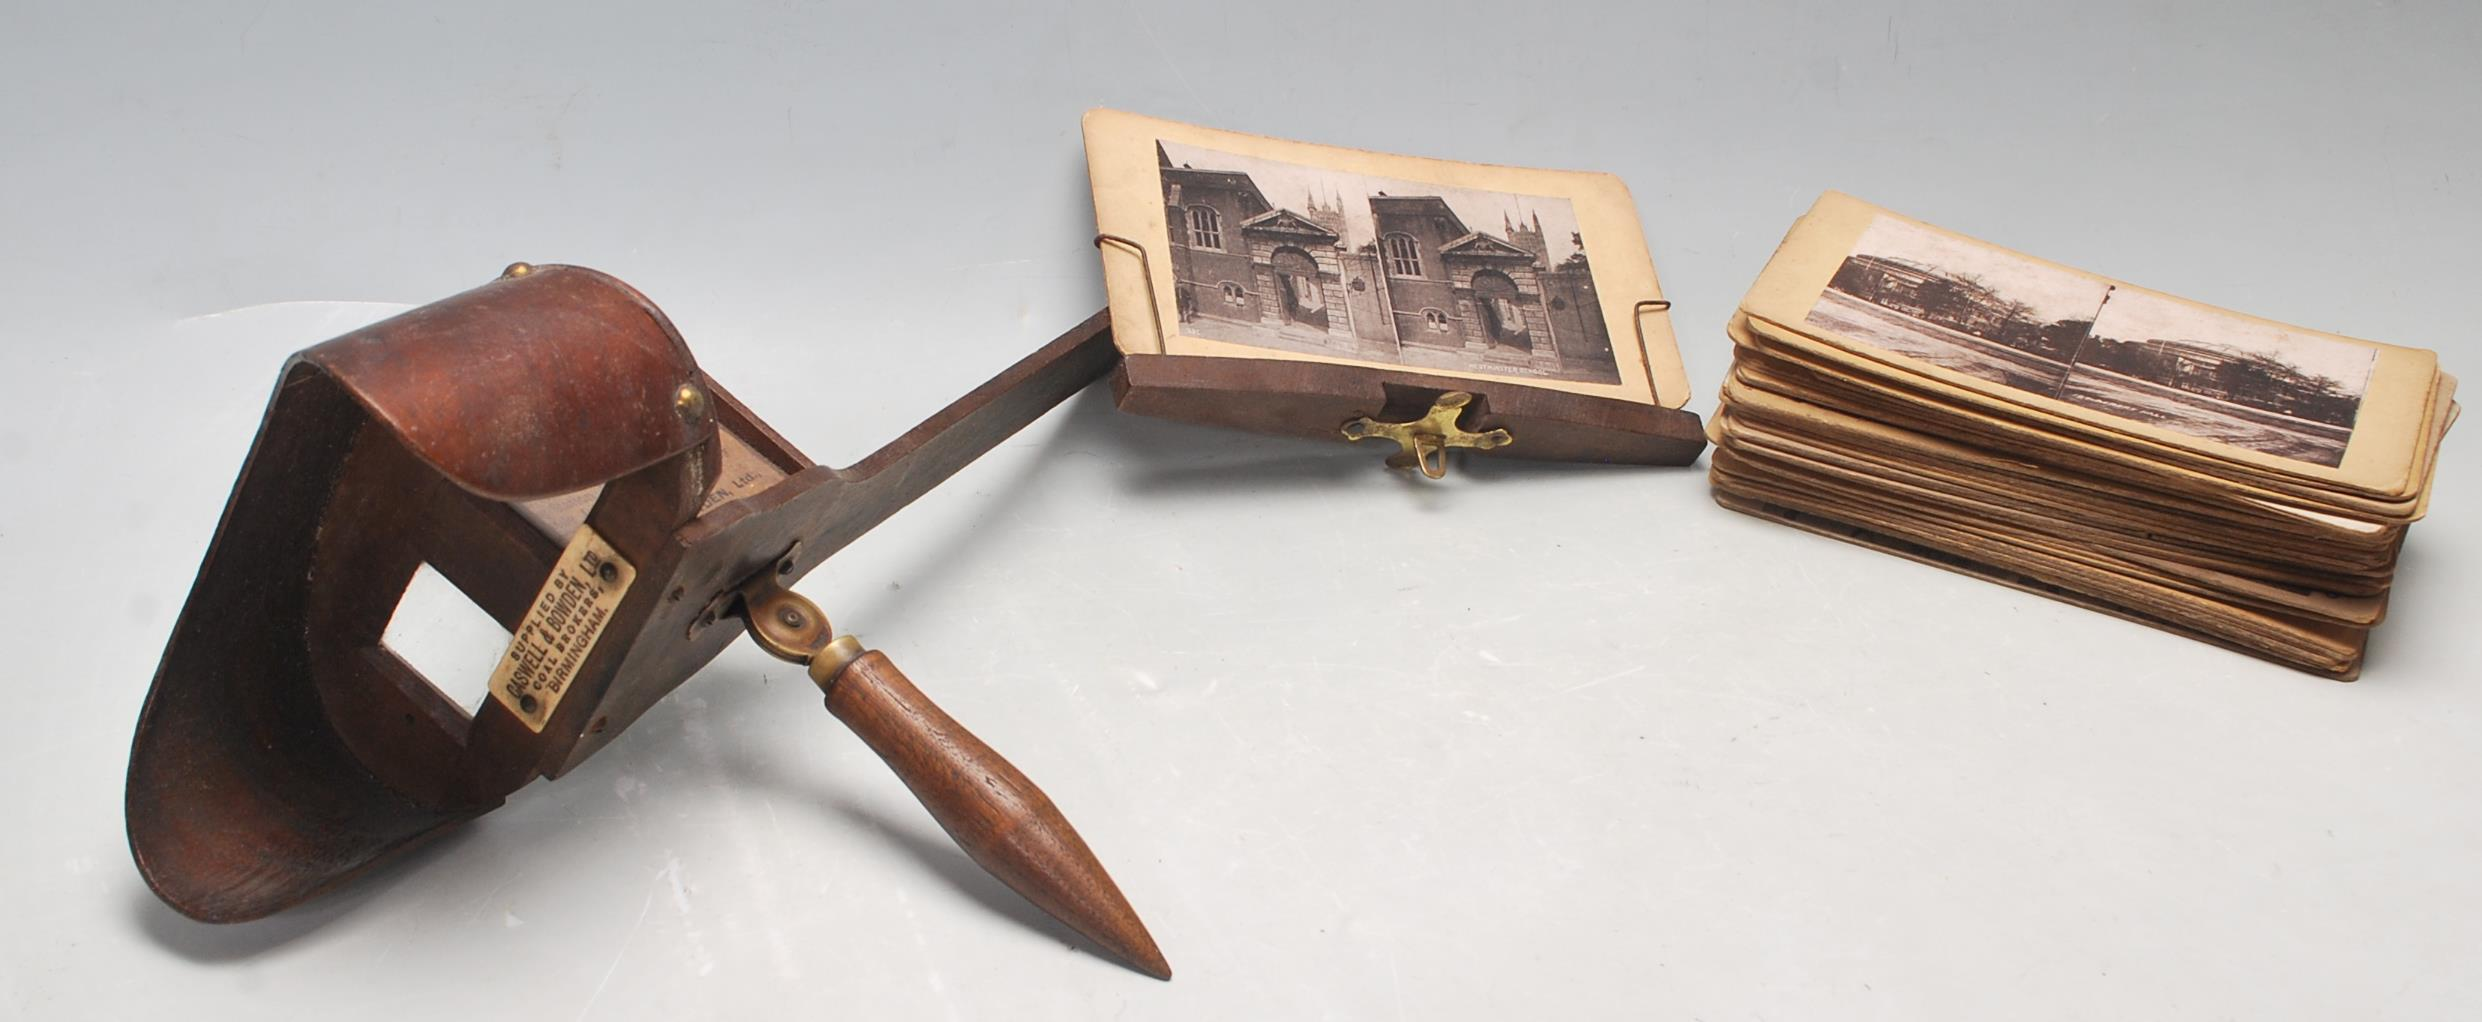 A LATE 19TH CENTURY VICTORIAN STEREOSCOPE VIEWER WITH SLIDES OF LONDON, BIRMINGHAM AND SOUTH AFRICA